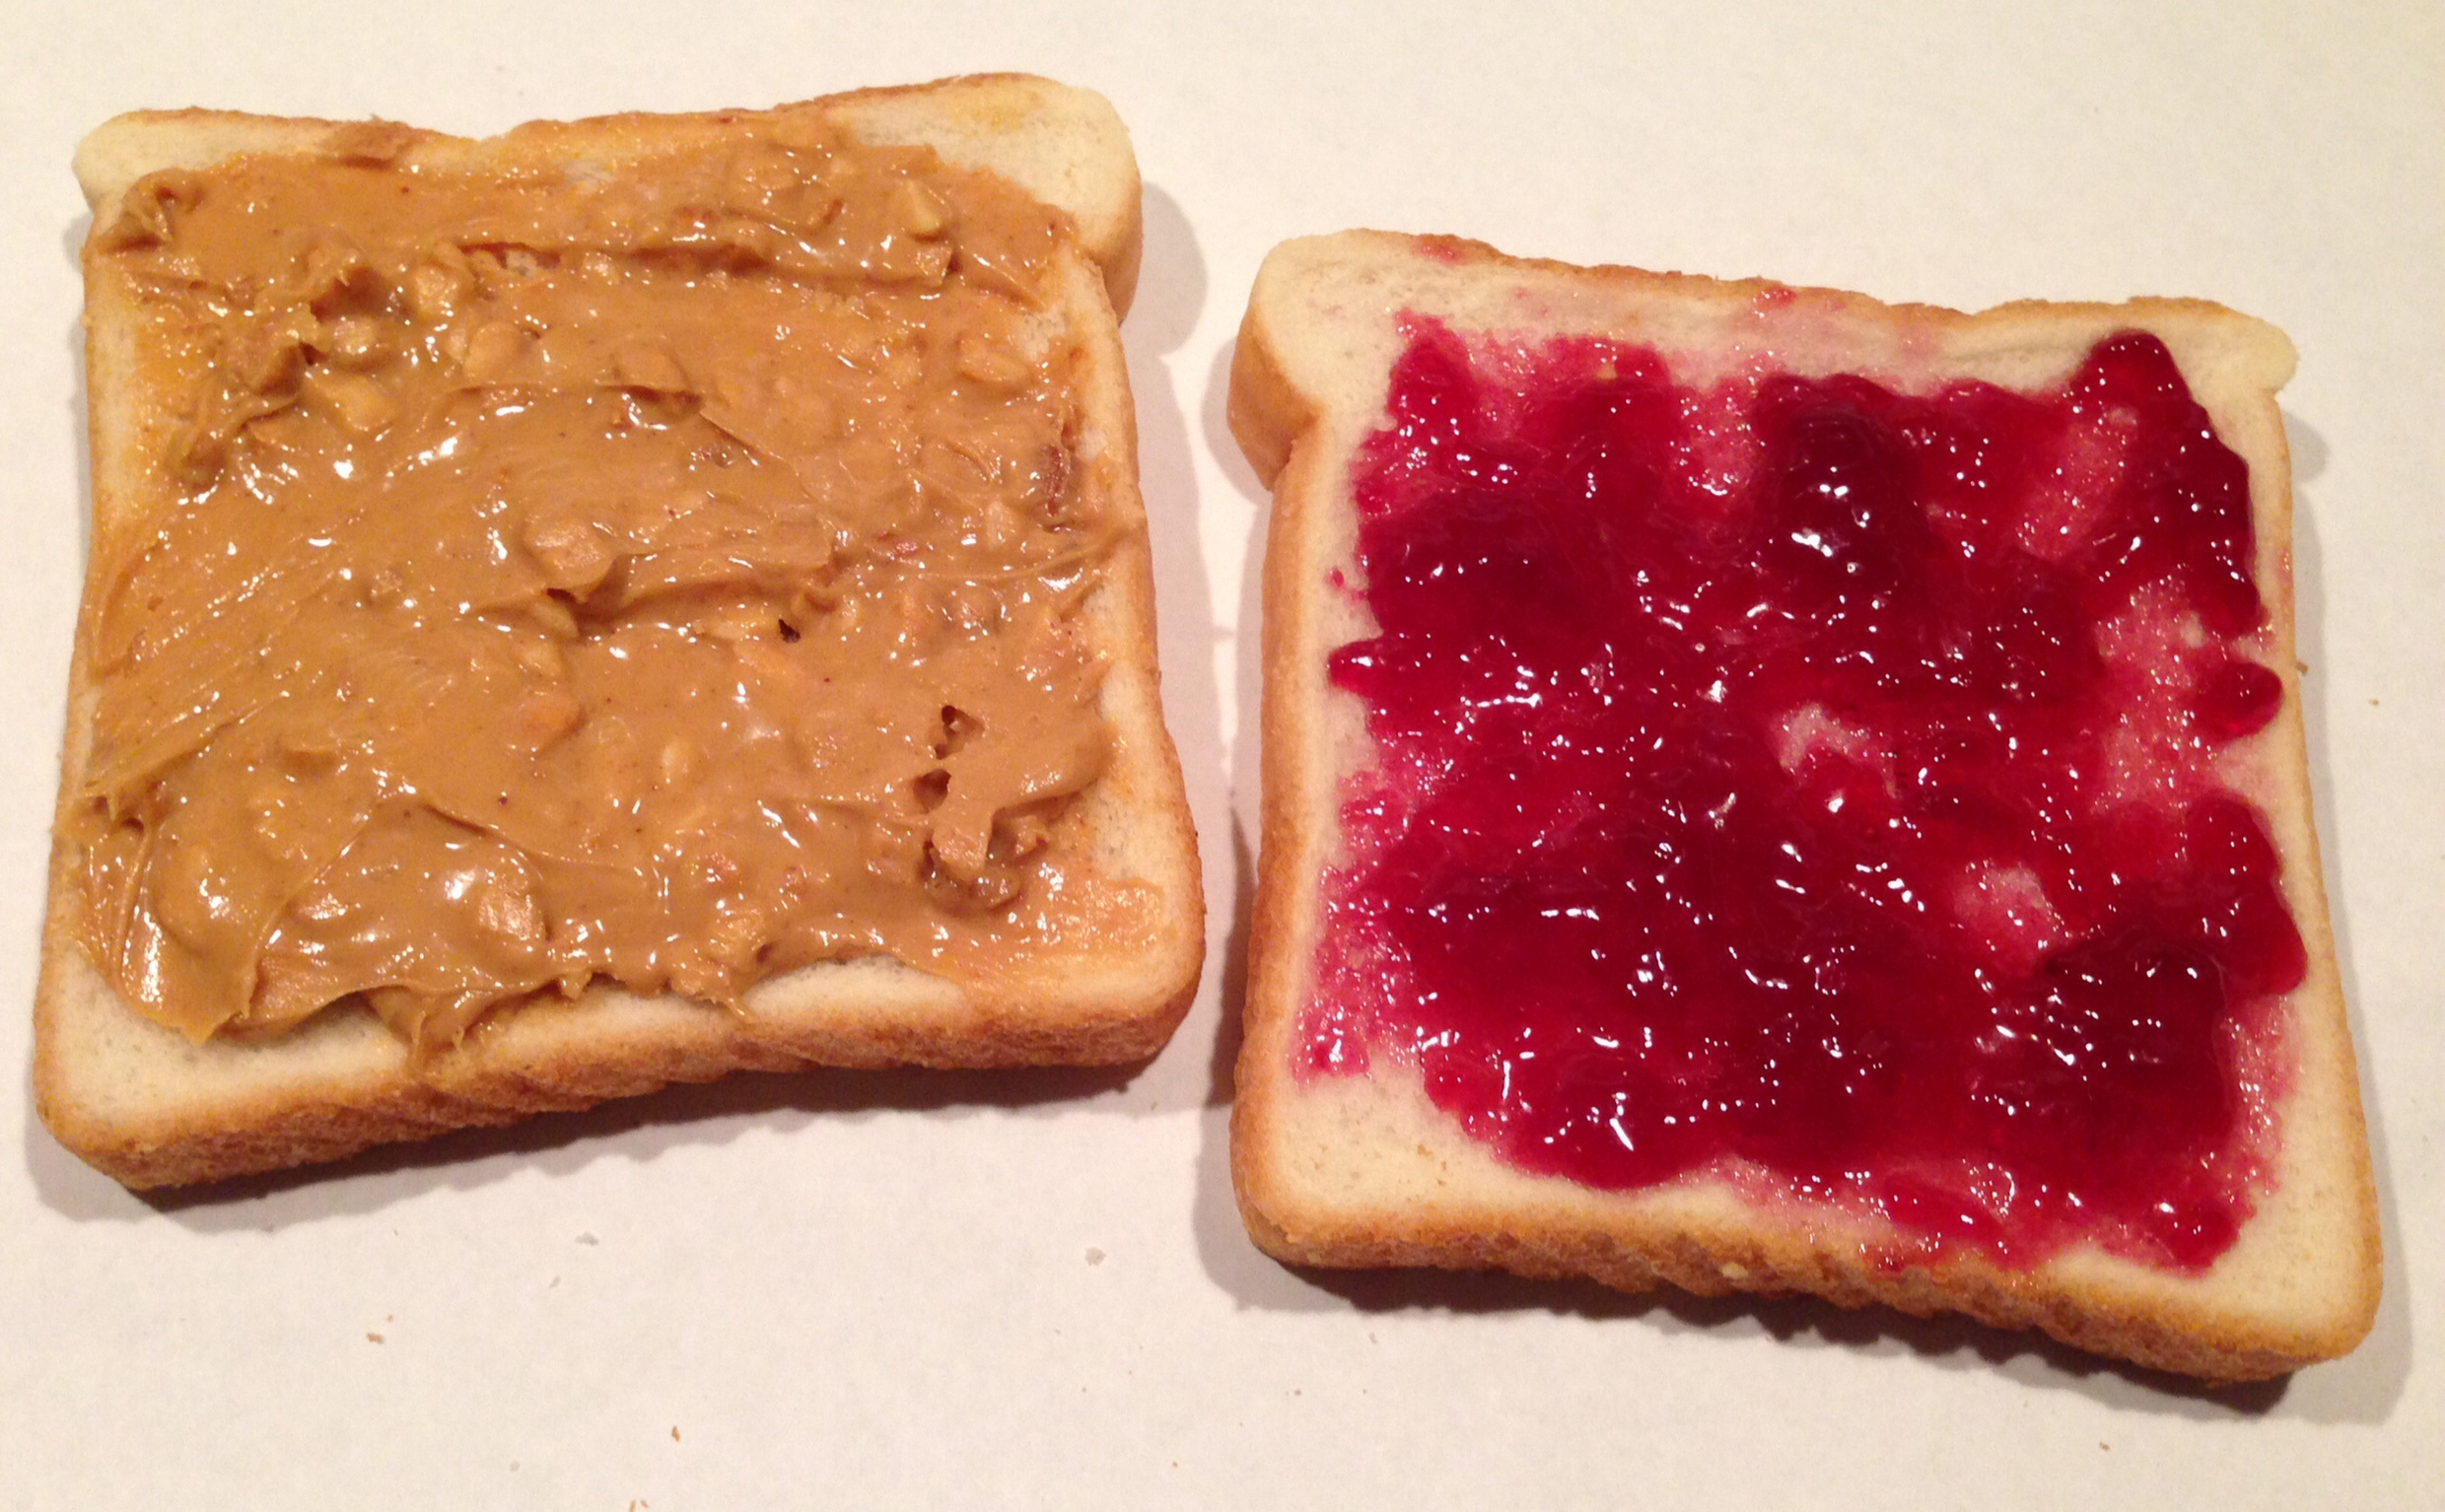 File:Peanut Butter and Jelly Sandwich.jpg - Wikimedia Commons